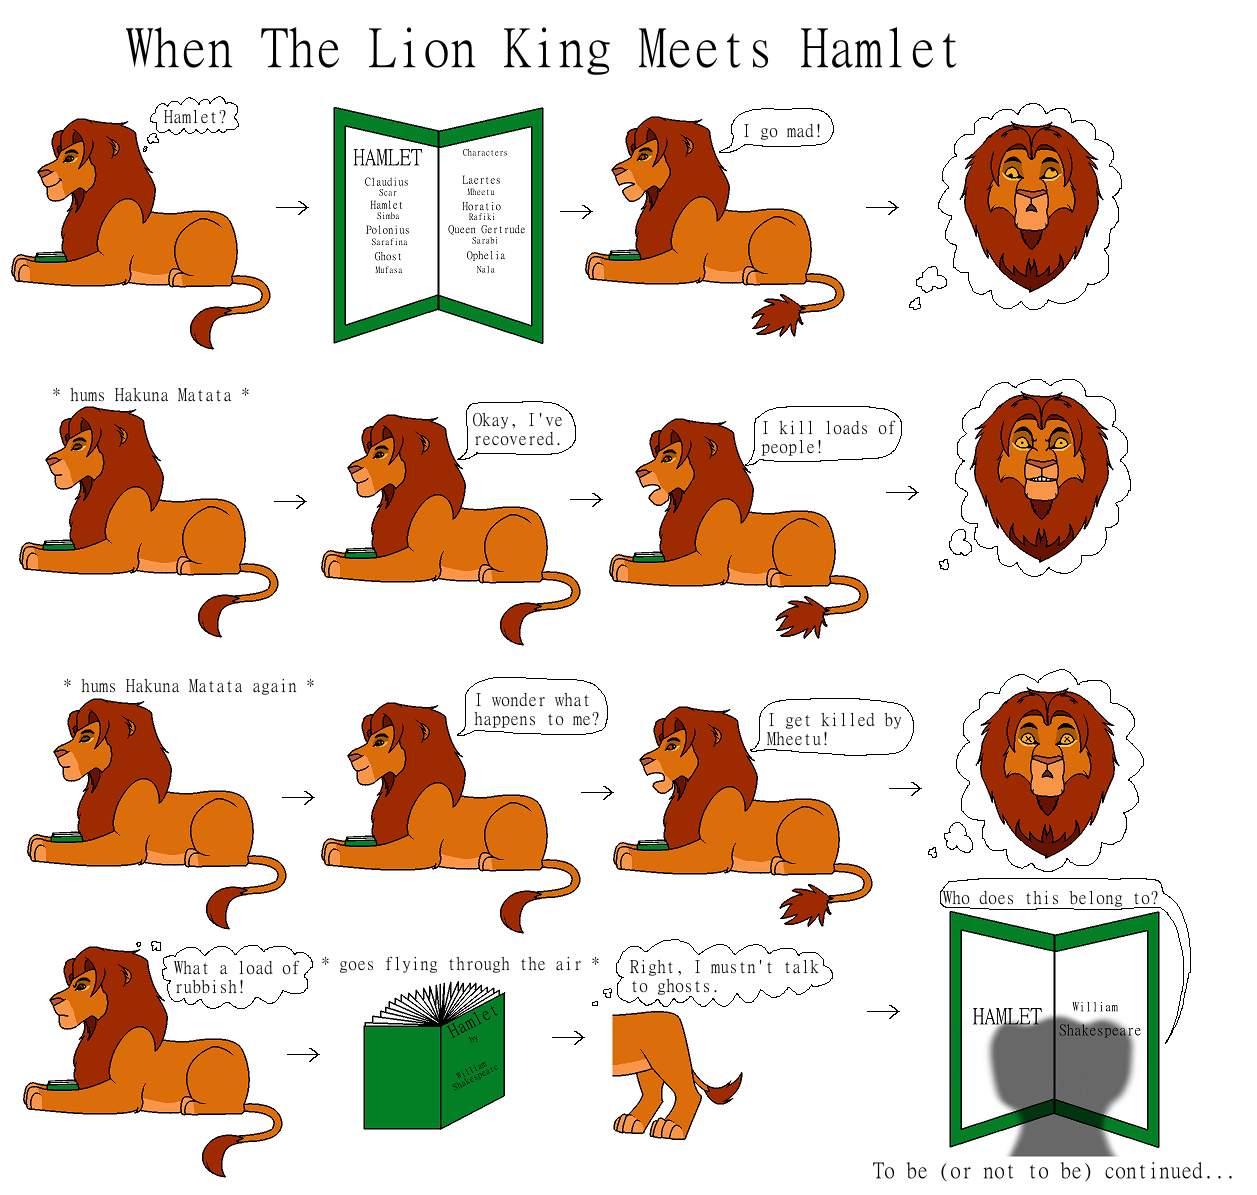 the comparison in similarities of hamlet by william shakespeare and the movie the lion king In both hamlet and the lion king, they talk about circle of life in the tragedy of hamlet, hamlet answers king claudius upon asking a question where is the dead body of polonius, hamlet explains how man dies, warms eats the man, fish eats the worms, and a new man eats the fish correspondingly mufasa tells simba when a lion dies the lion turns.